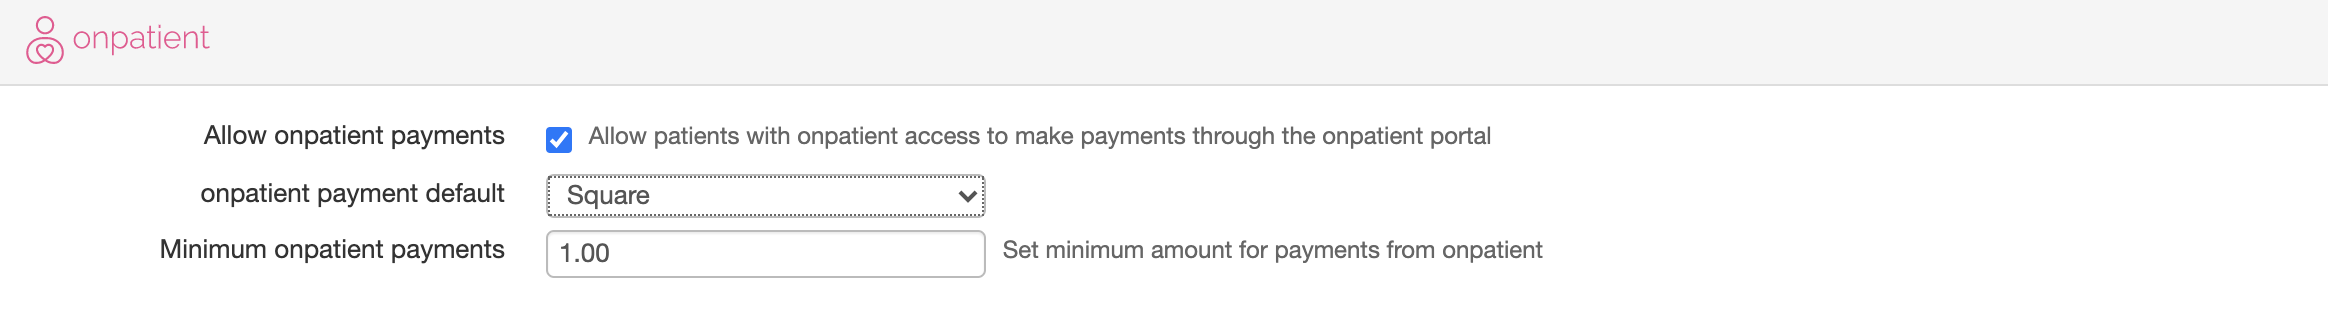 Onpatient_Payment_Settings.png